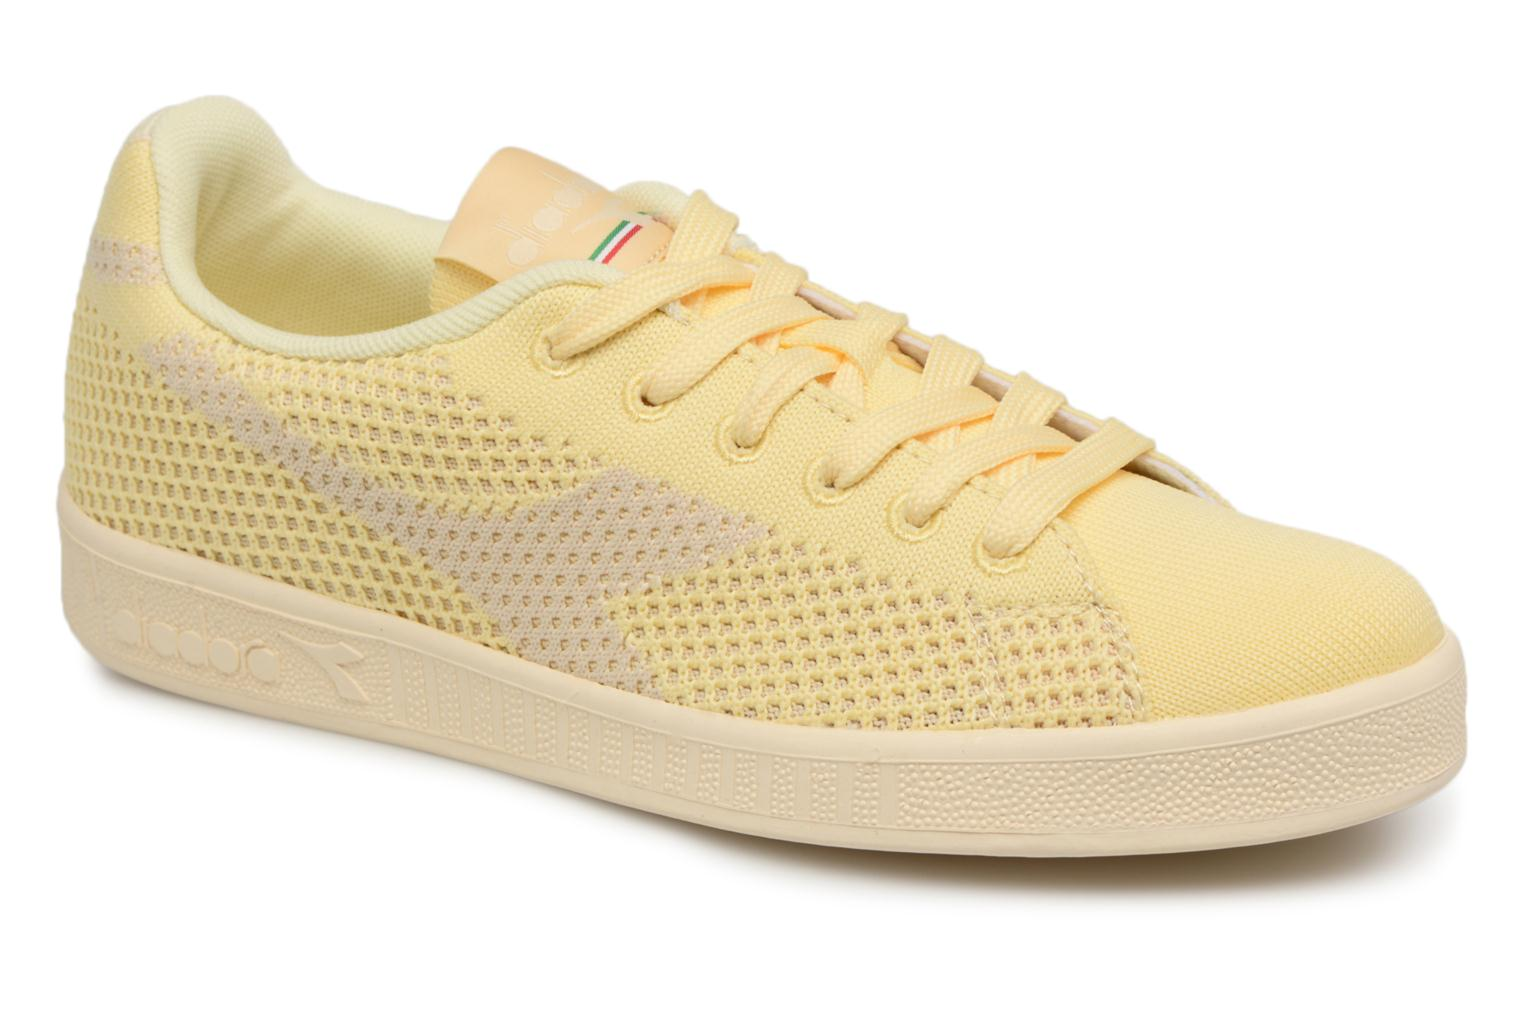 Diadora GAME WEAVE W (Jaune) - Baskets en Más cómodo Chaussures casual sauvages